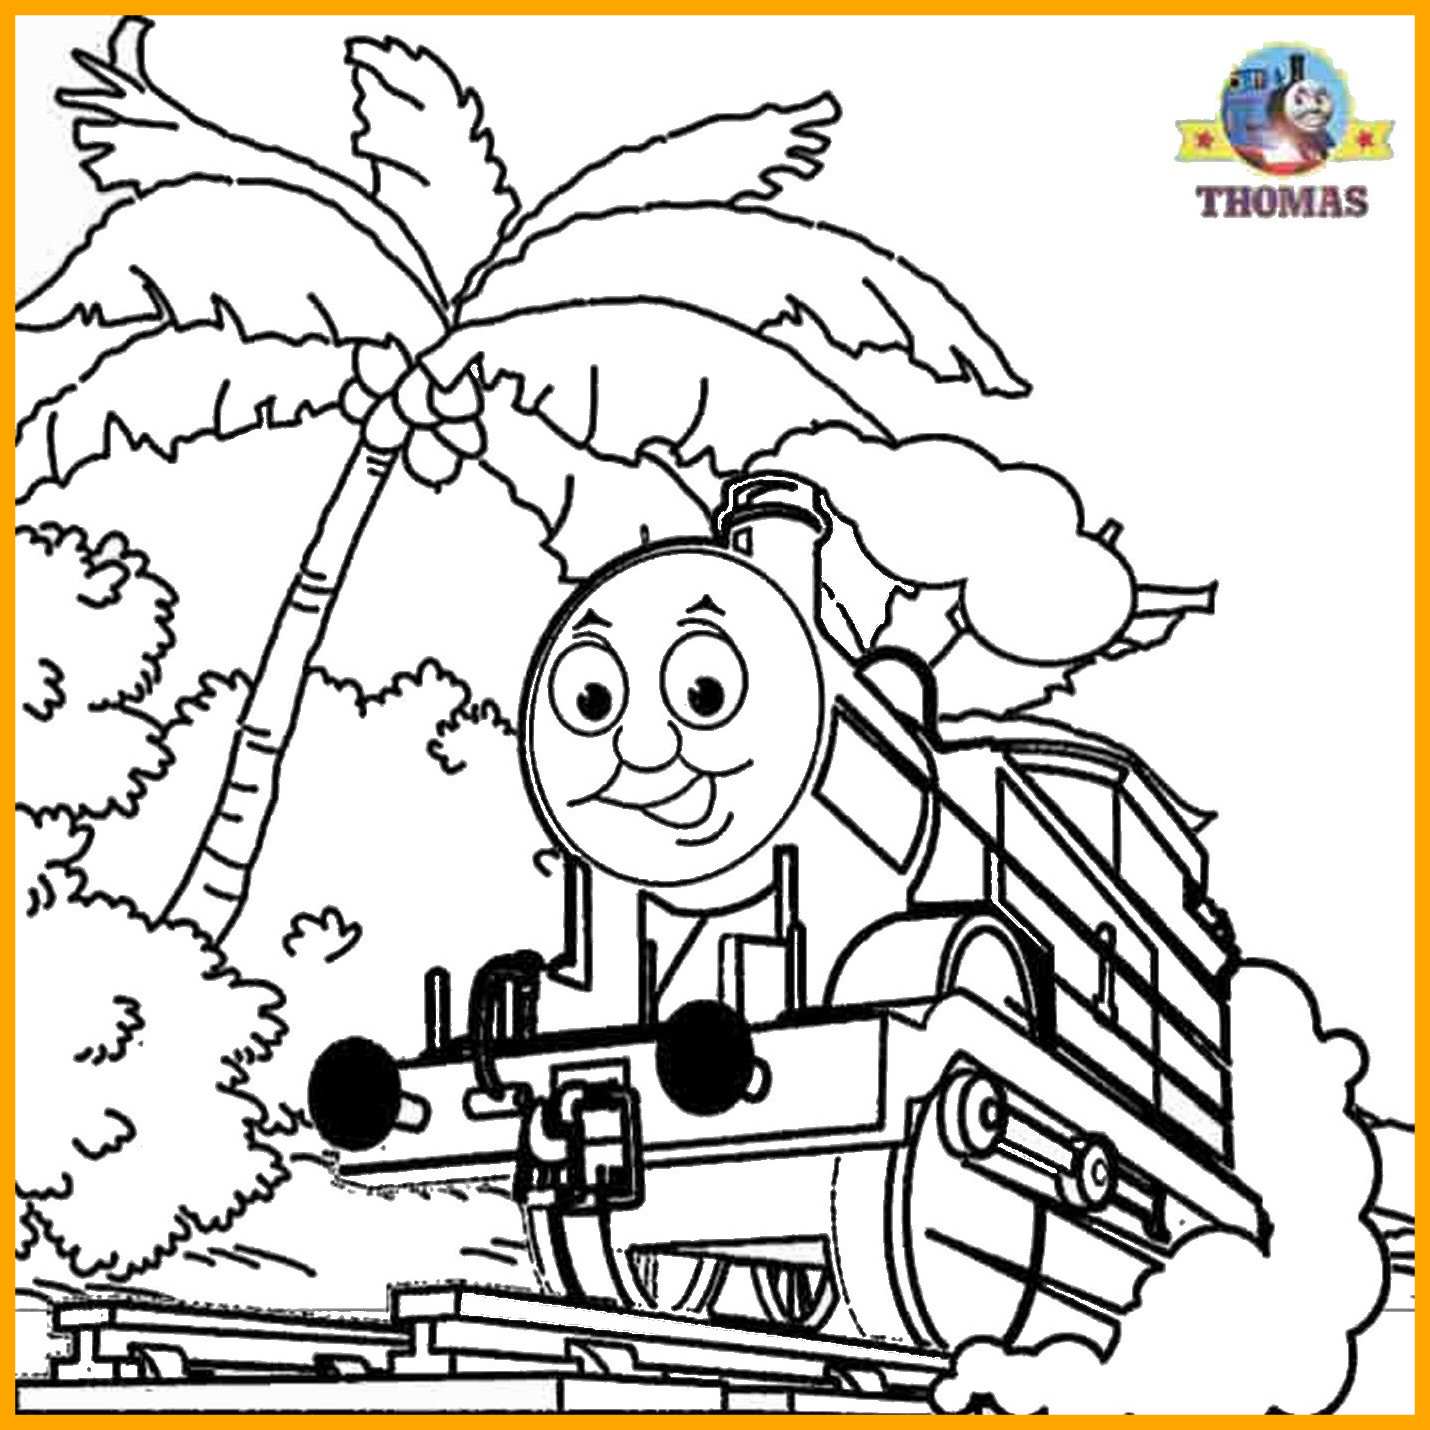 1430x1430 Stunning Thomas The Train Coloring Pages Image Of Tank Engine